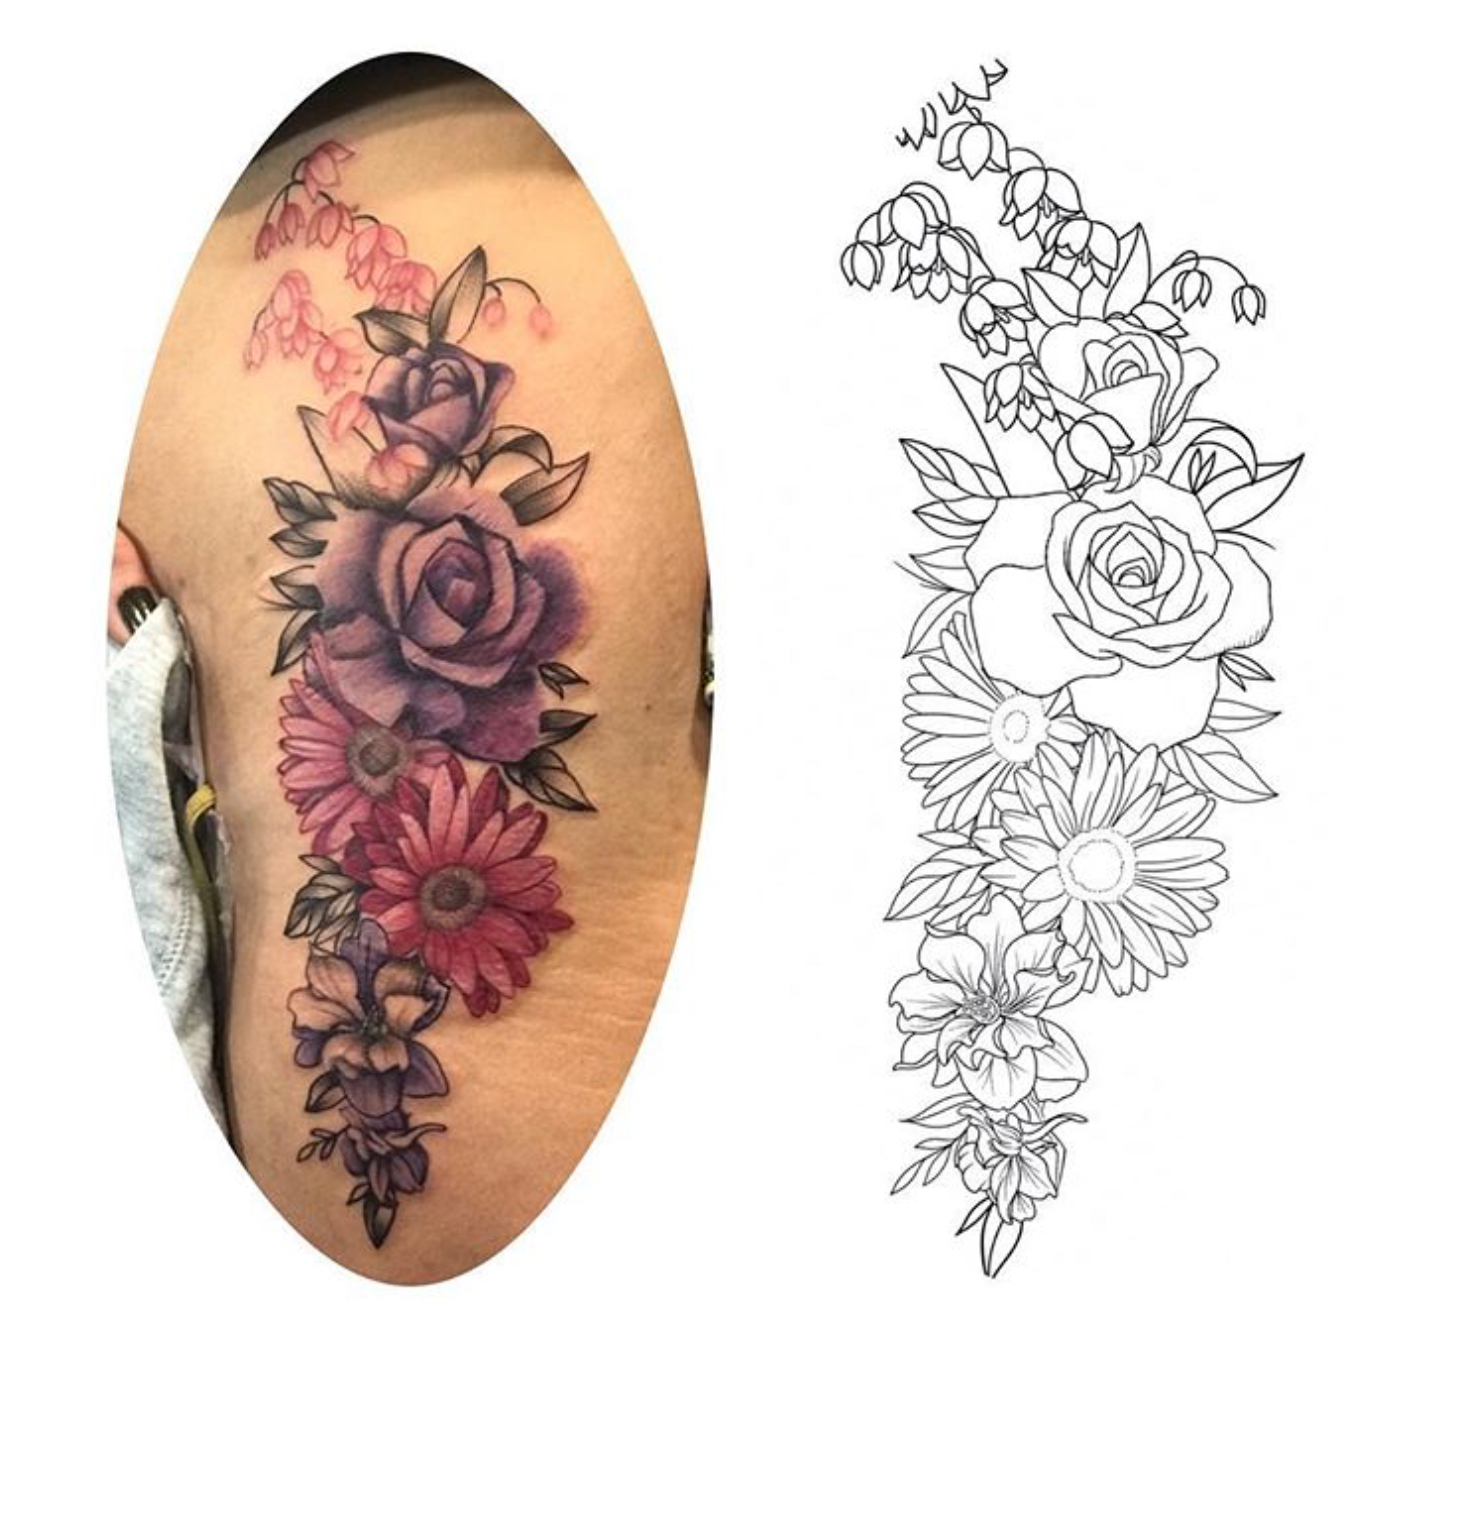 Flower sketch / Tattoo by Rosa Pérez